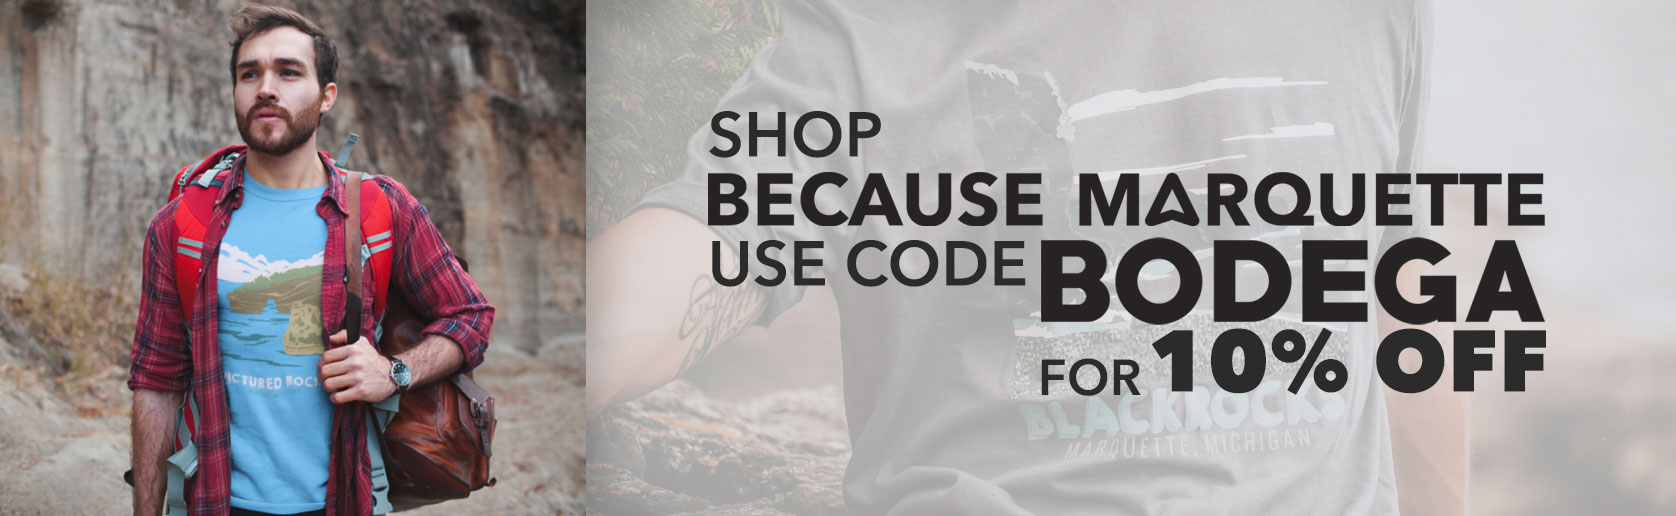 Use code BODEGA at becausemarquette.com for ten percent off your next order